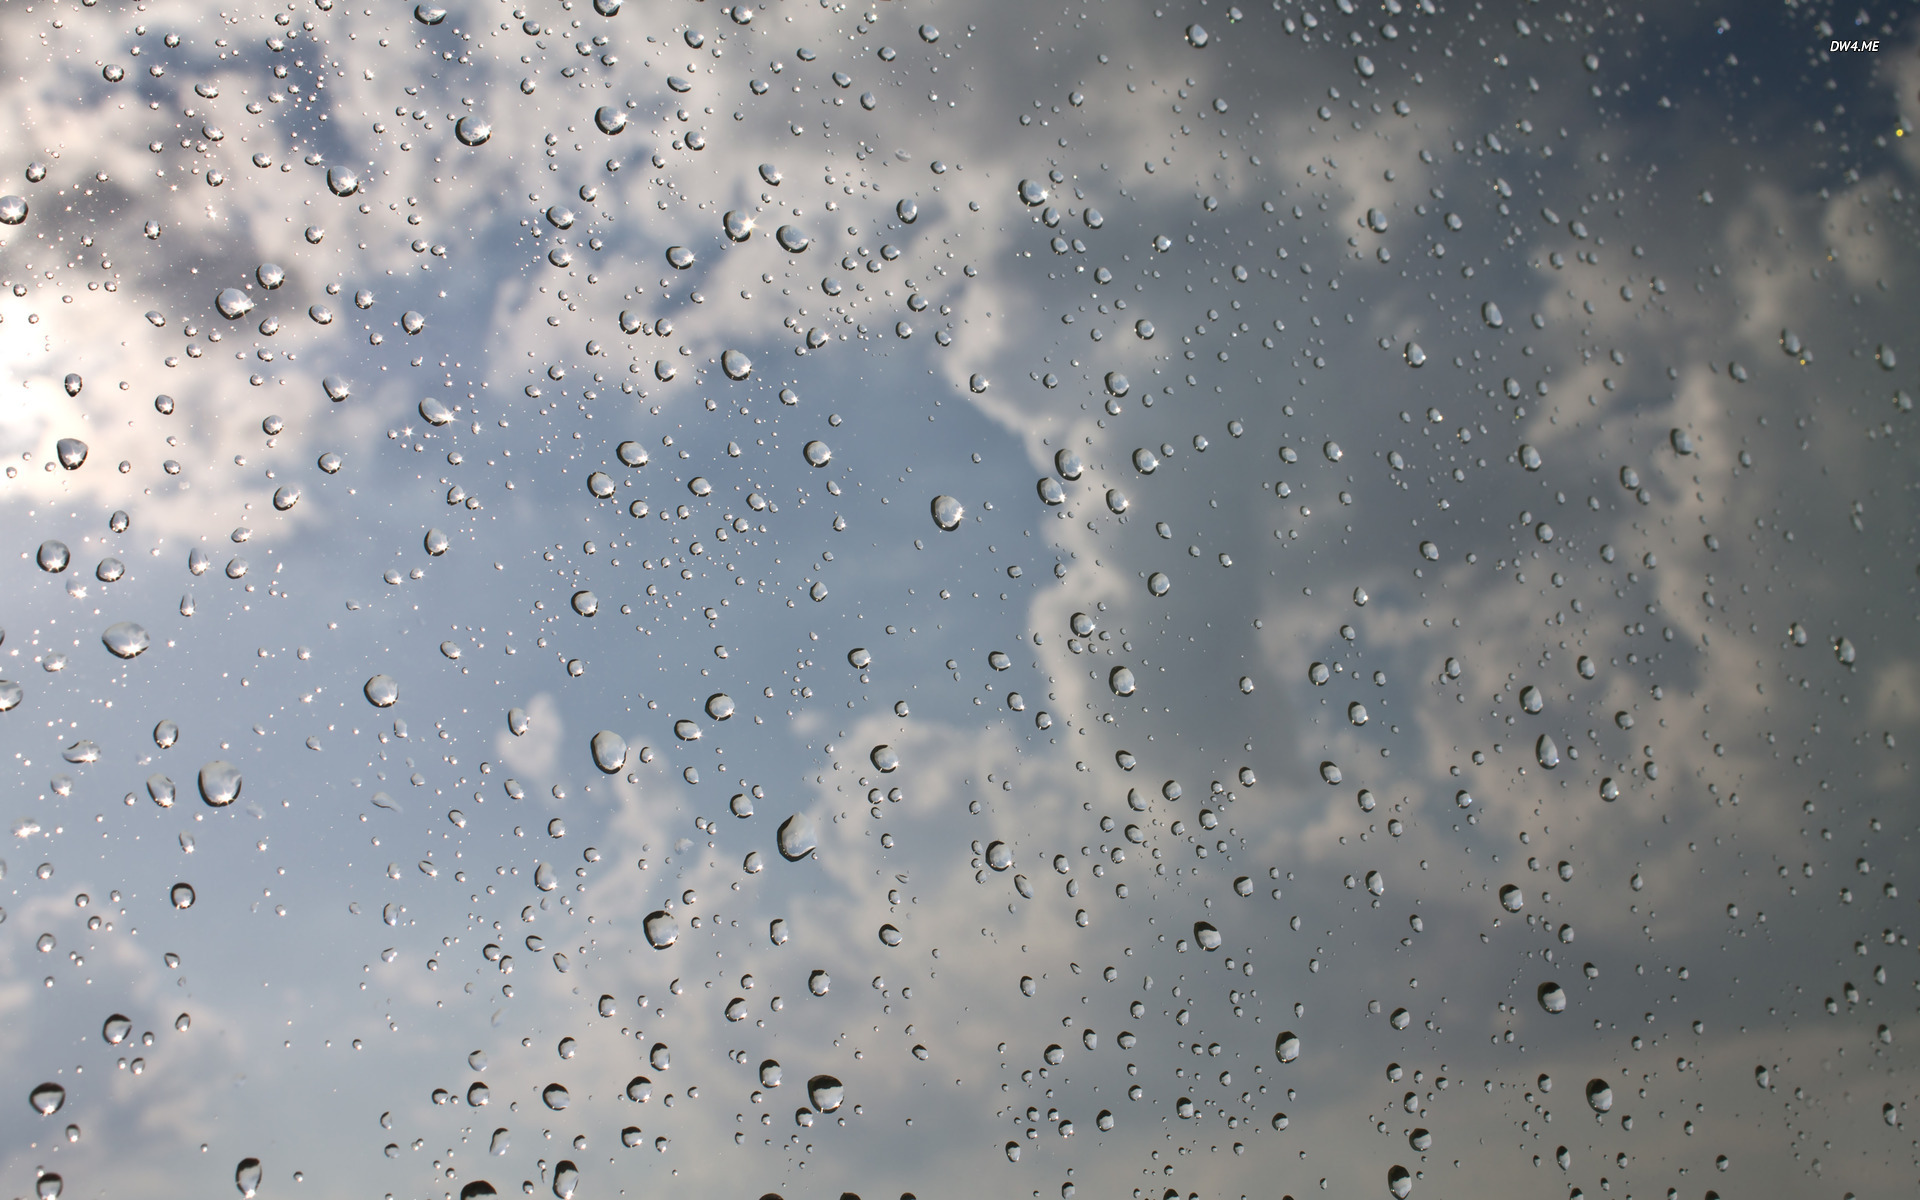 574-raindrops-and-clouds-1920x1200-photography-wallpaper